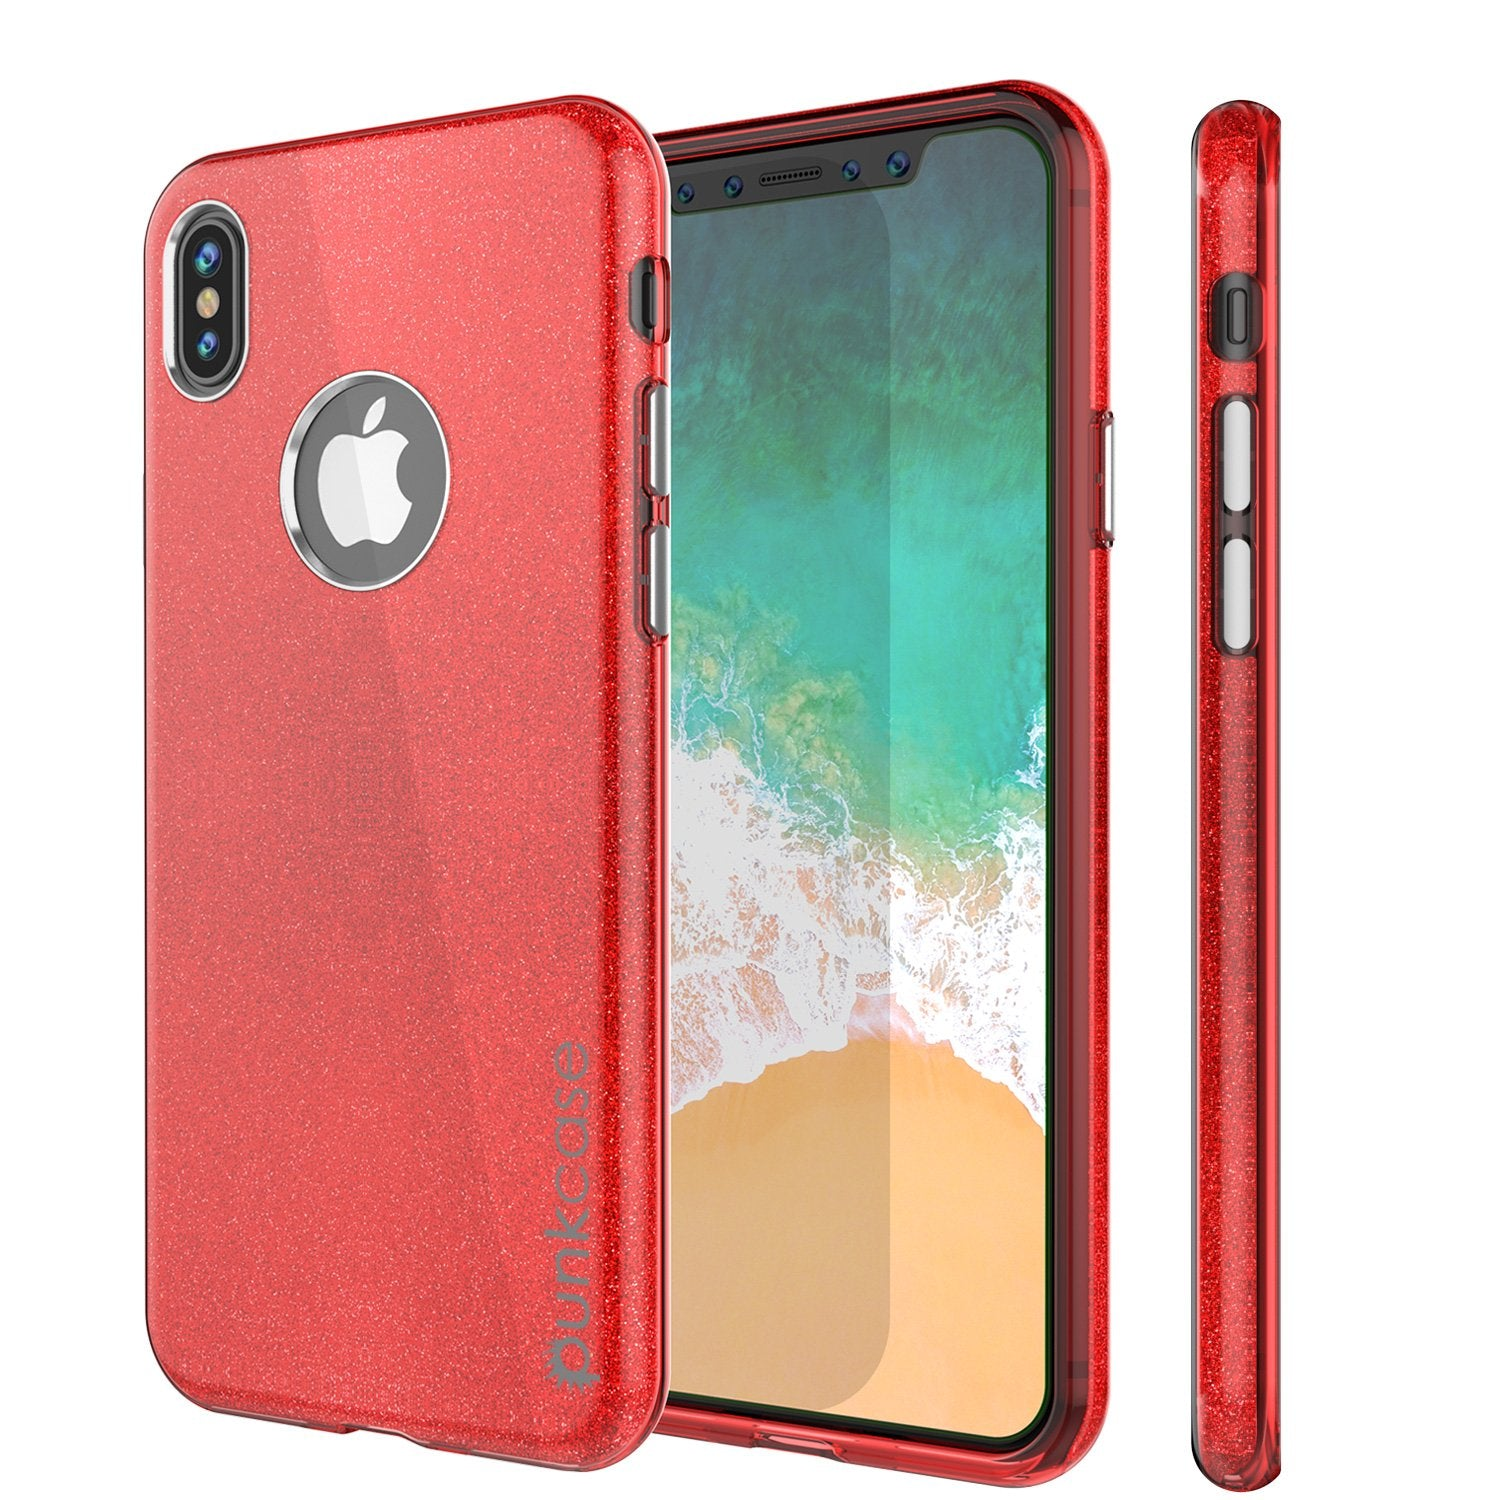 iPhone X Case, Punkcase Galactic 2.0 Series Ultra Slim Cover [Red]